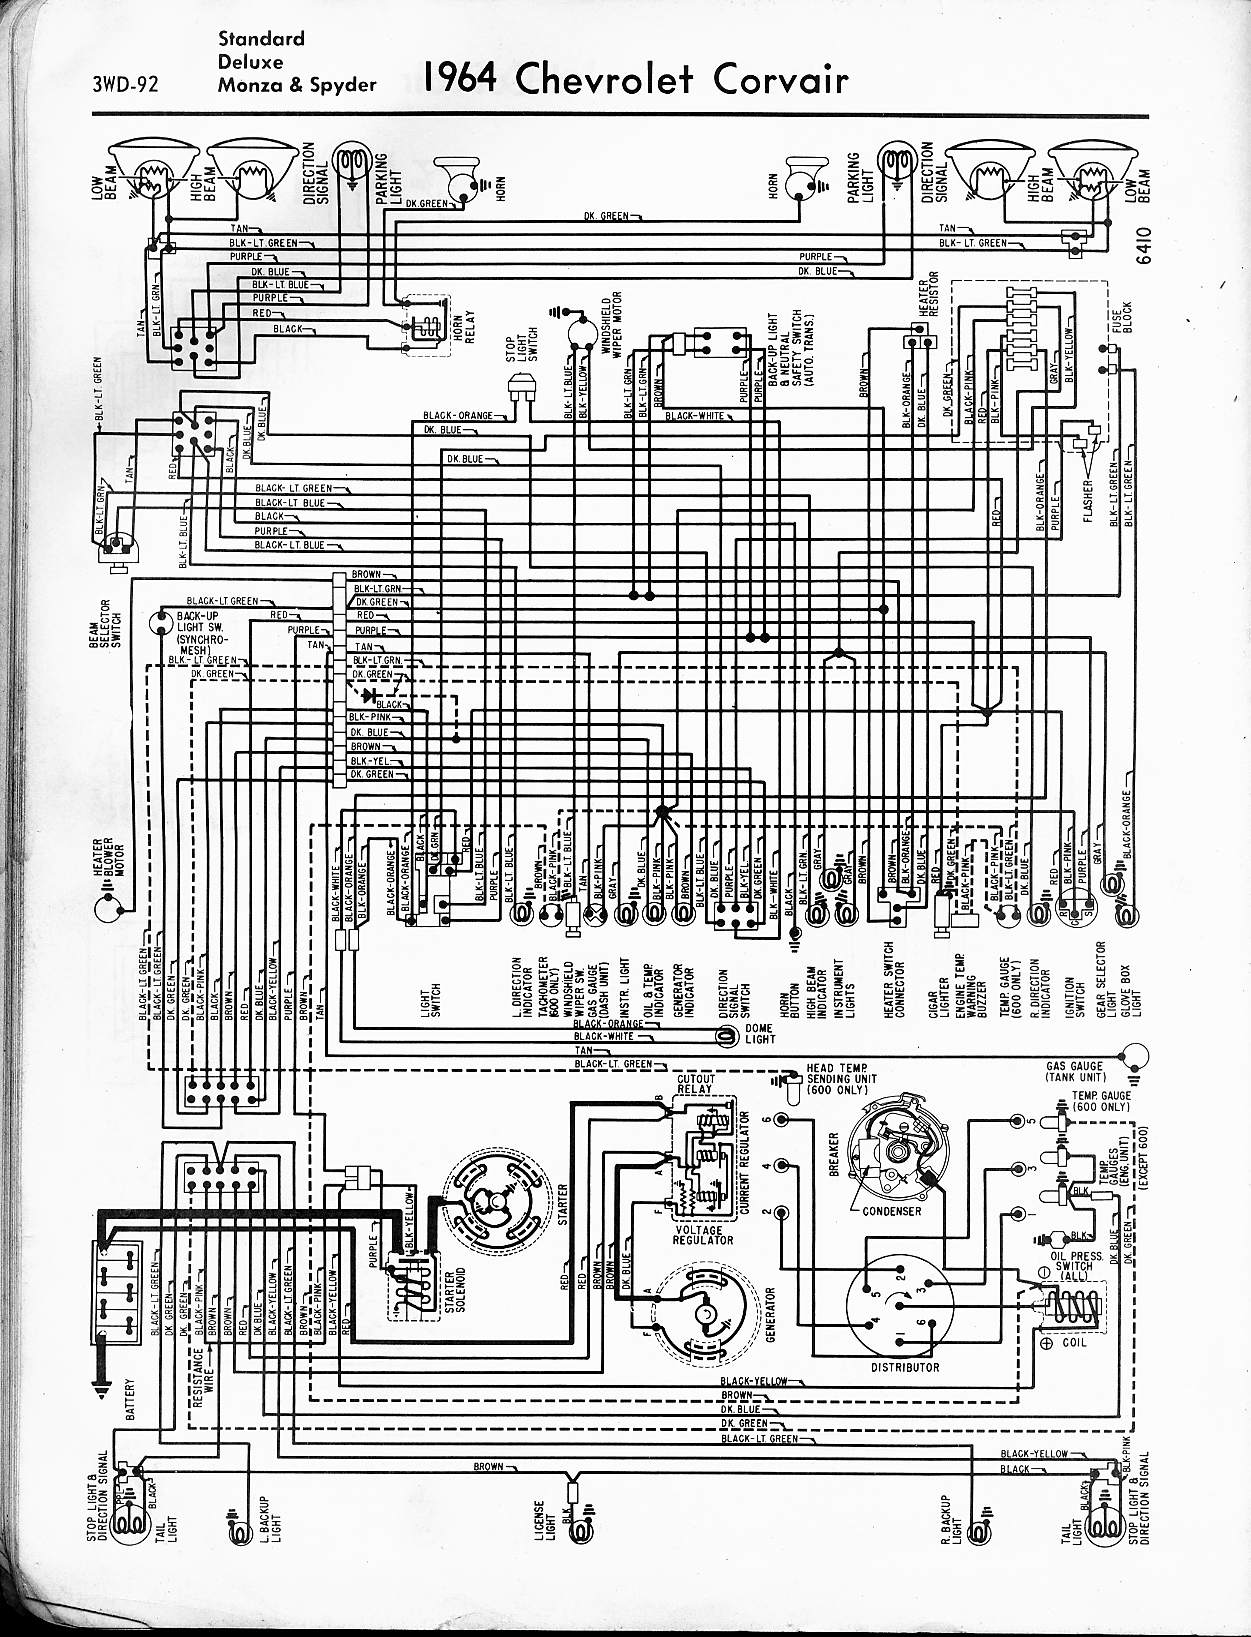 1962 Chevy Pickup Wiring Diagram from www.oldcarmanualproject.com